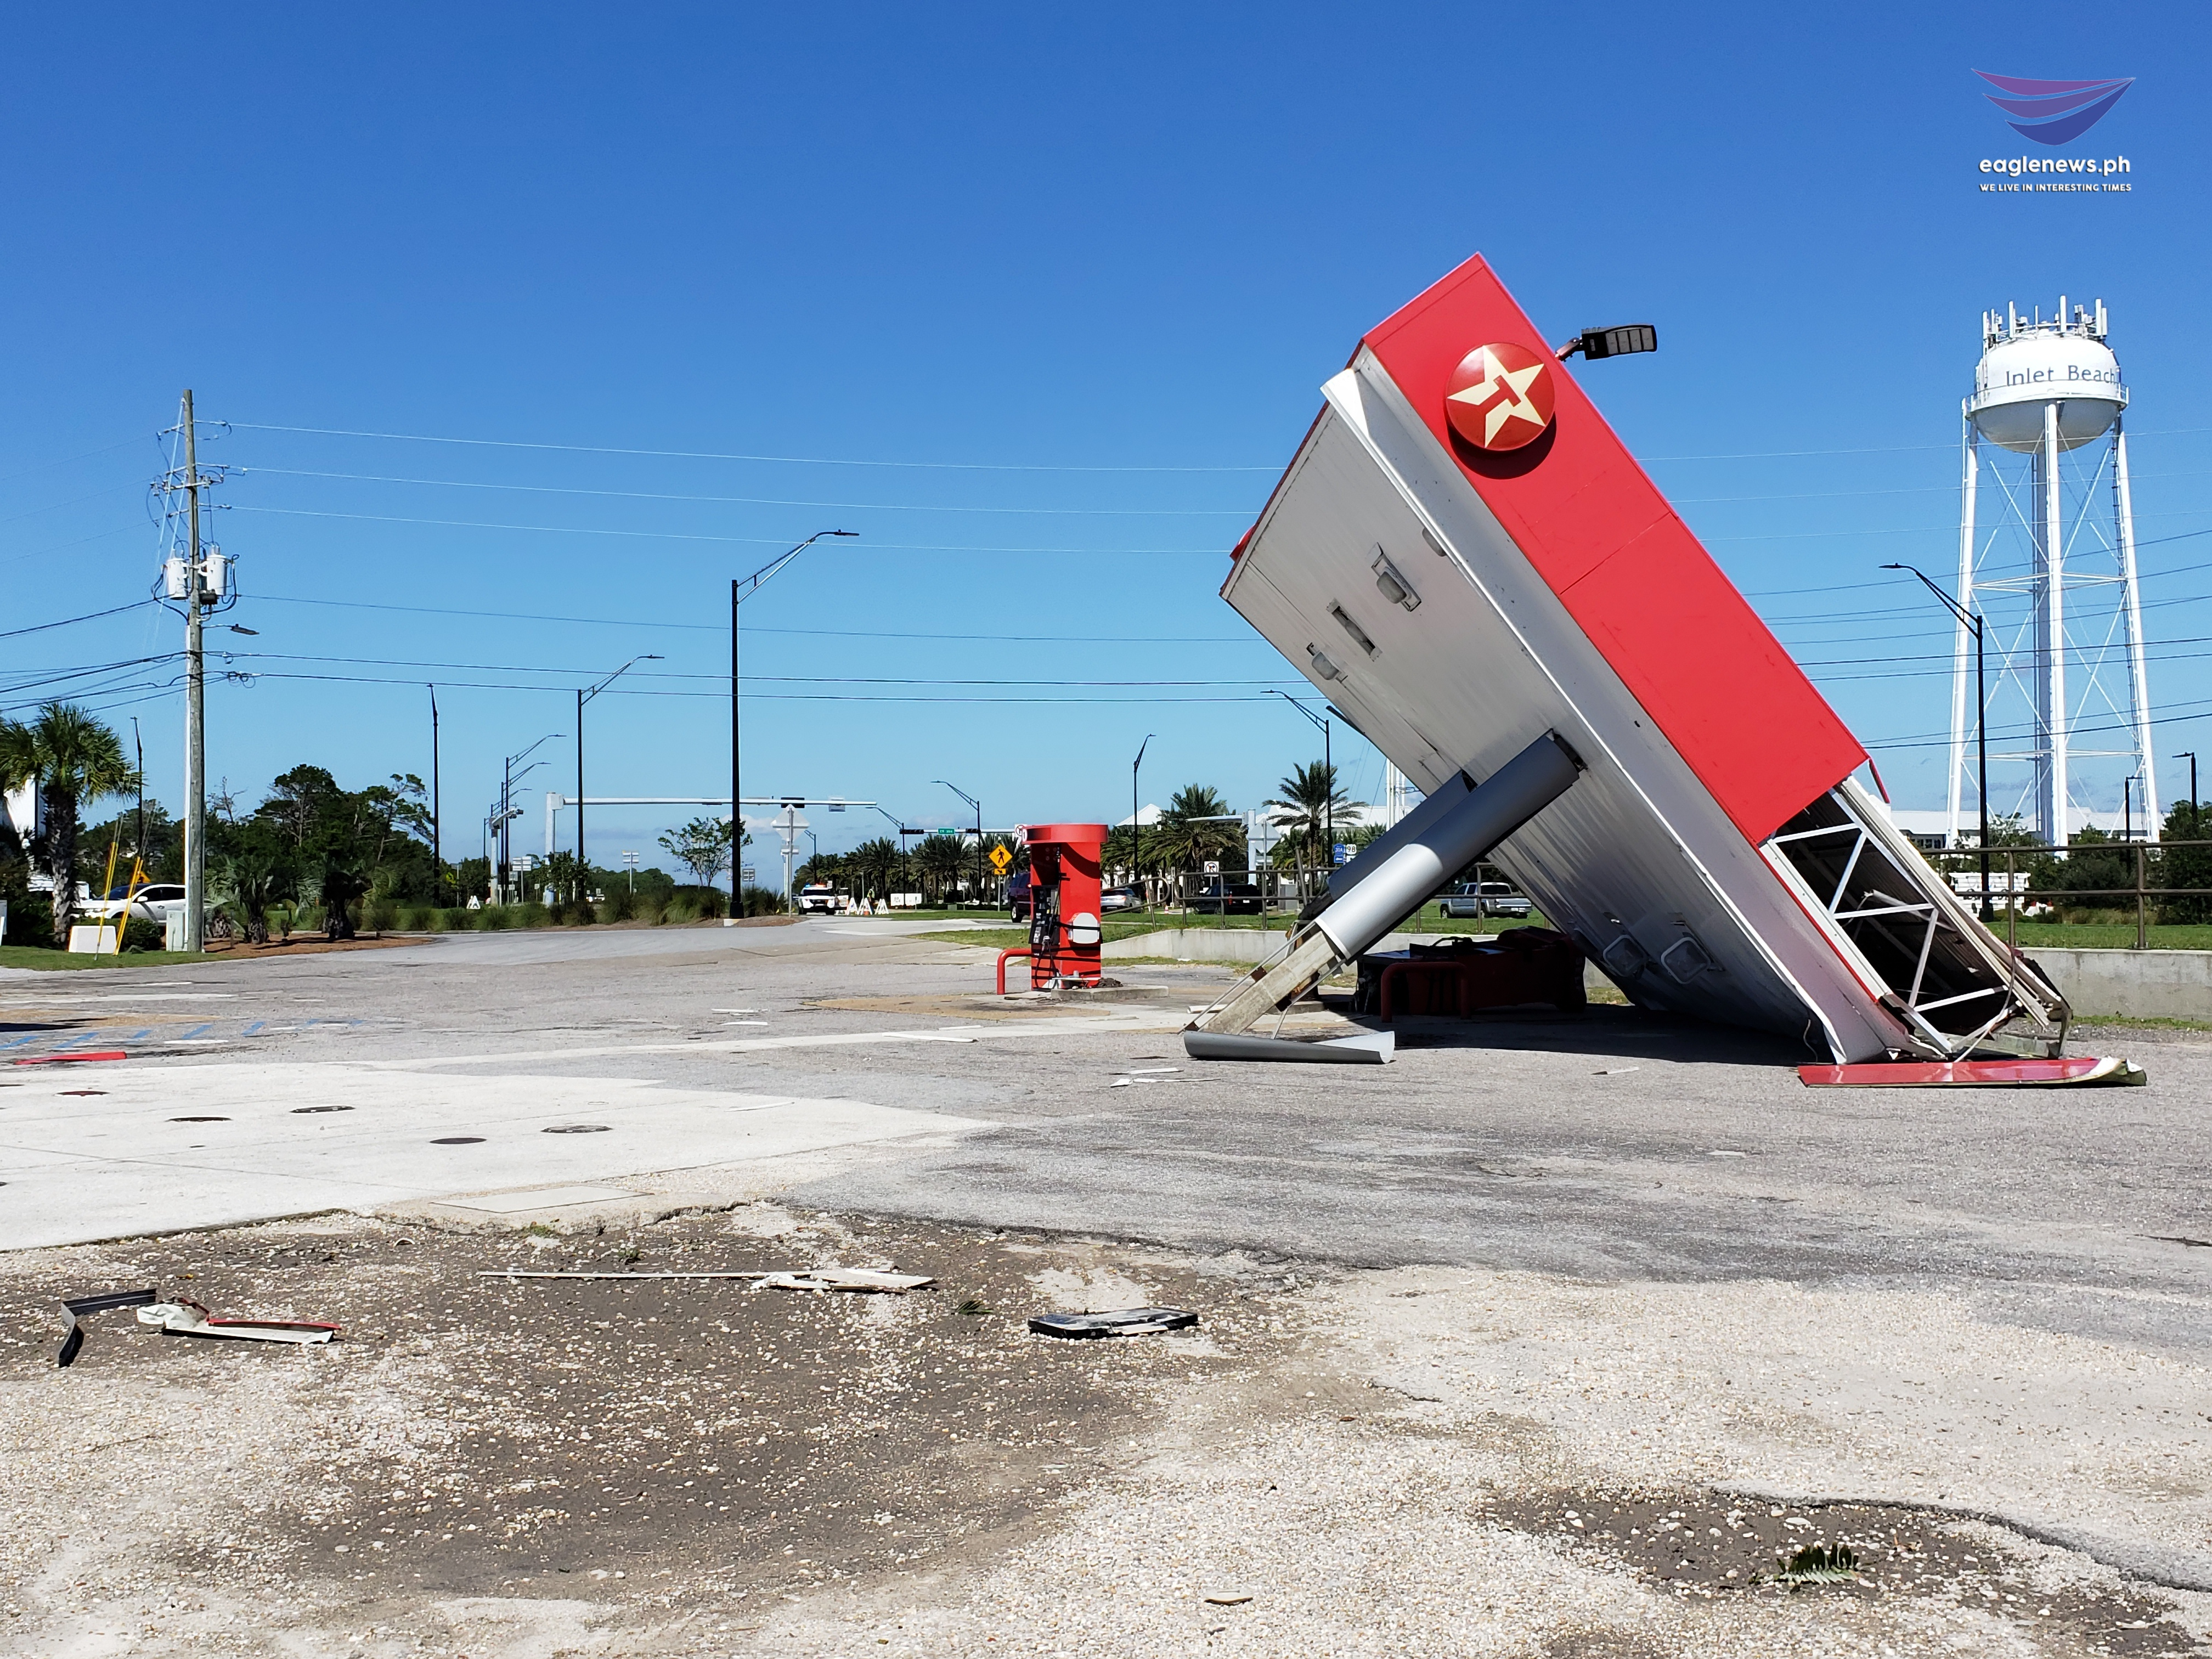 #EBCPhotojournalism: Gas Station collapses under force of Hurricane Michael